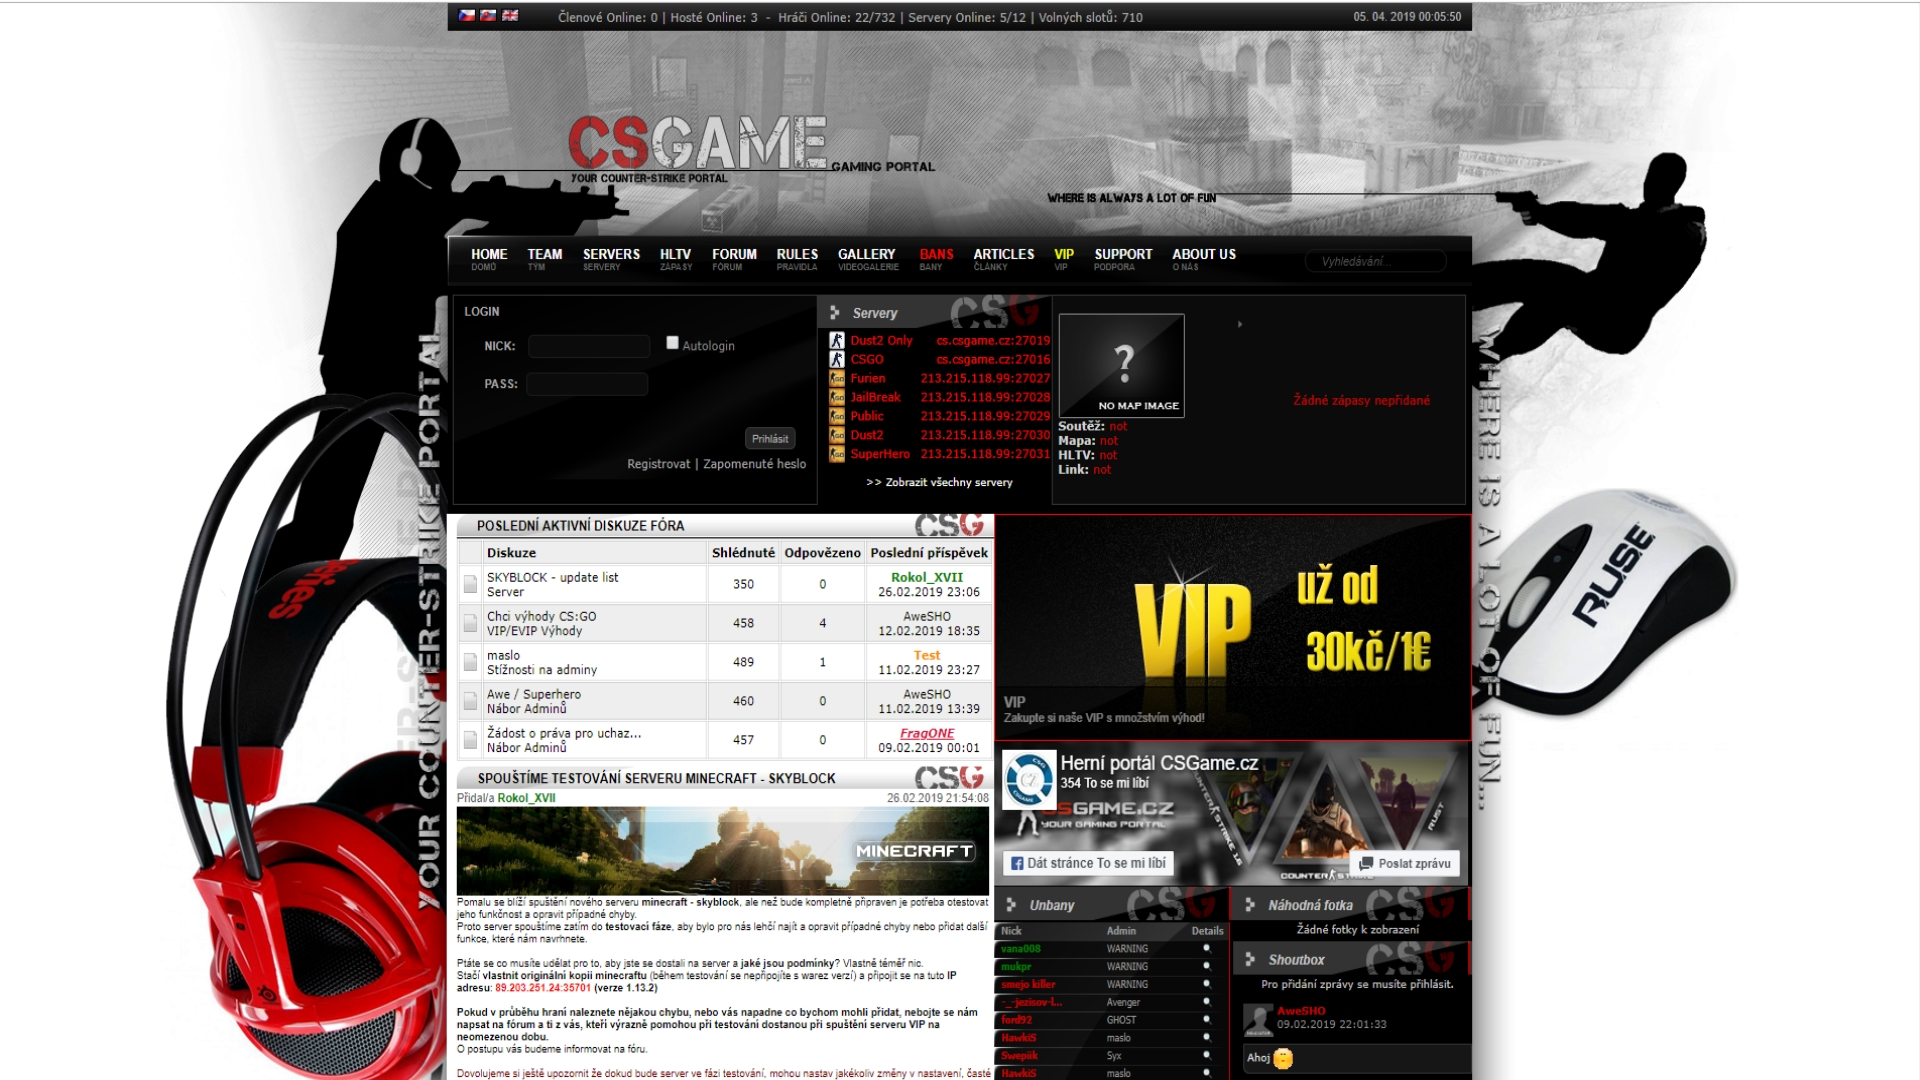 CSGame.cz - Gaming